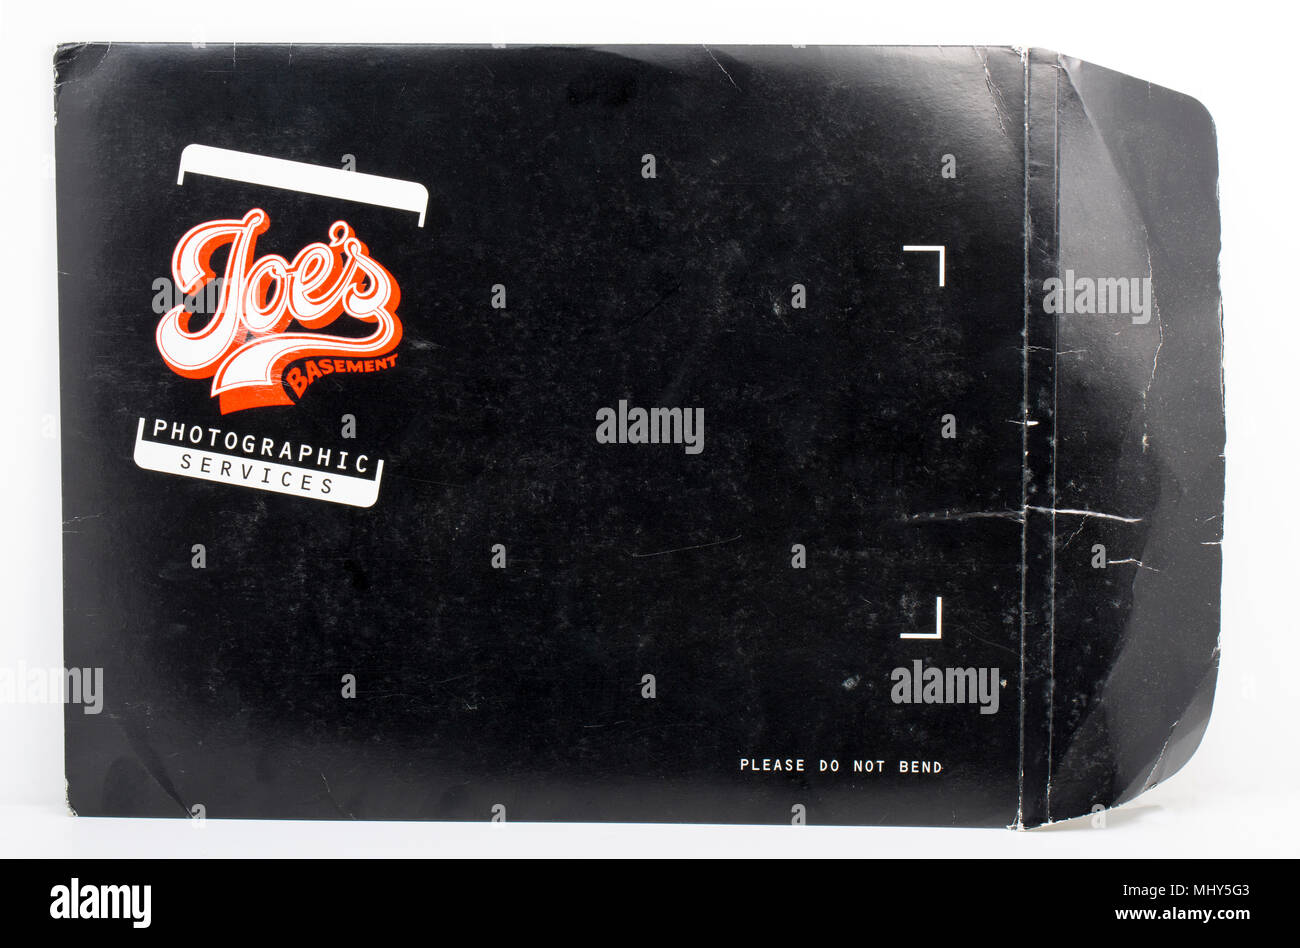 An old negative envelope from the now defunct Joe's Basement Photographic Services business on Wardour Street Soho London that closed in 2003. Joe's B - Stock Image